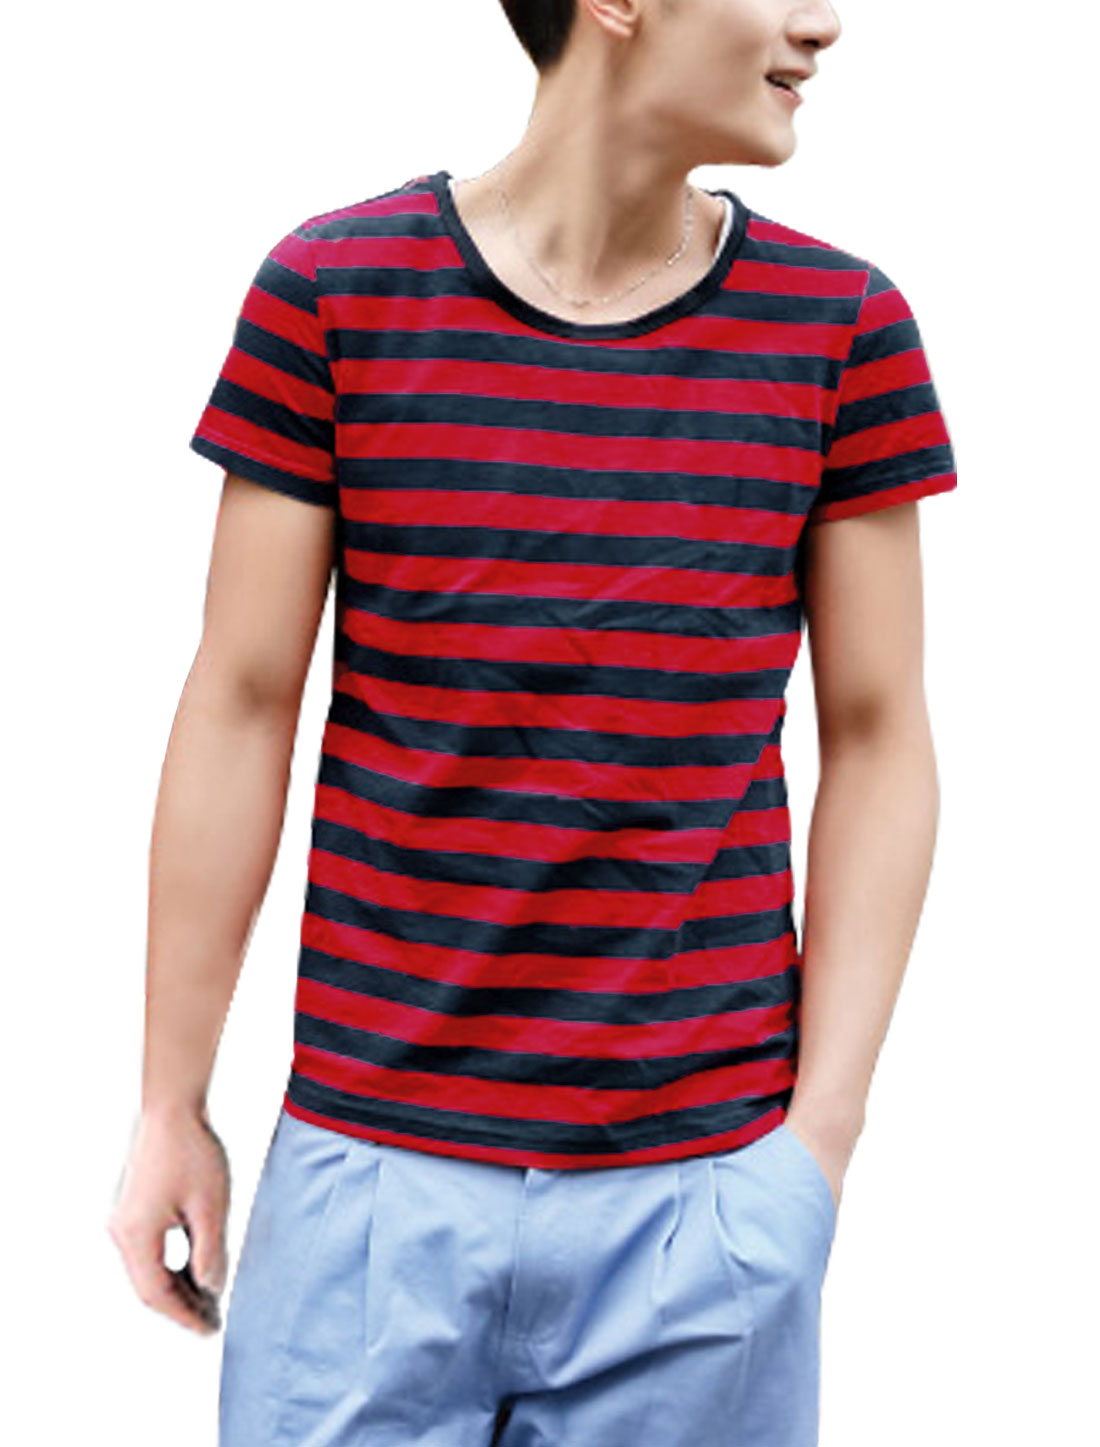 Man Round Neck Short Sleeve Bar Striped Tee Shirt Red Black M